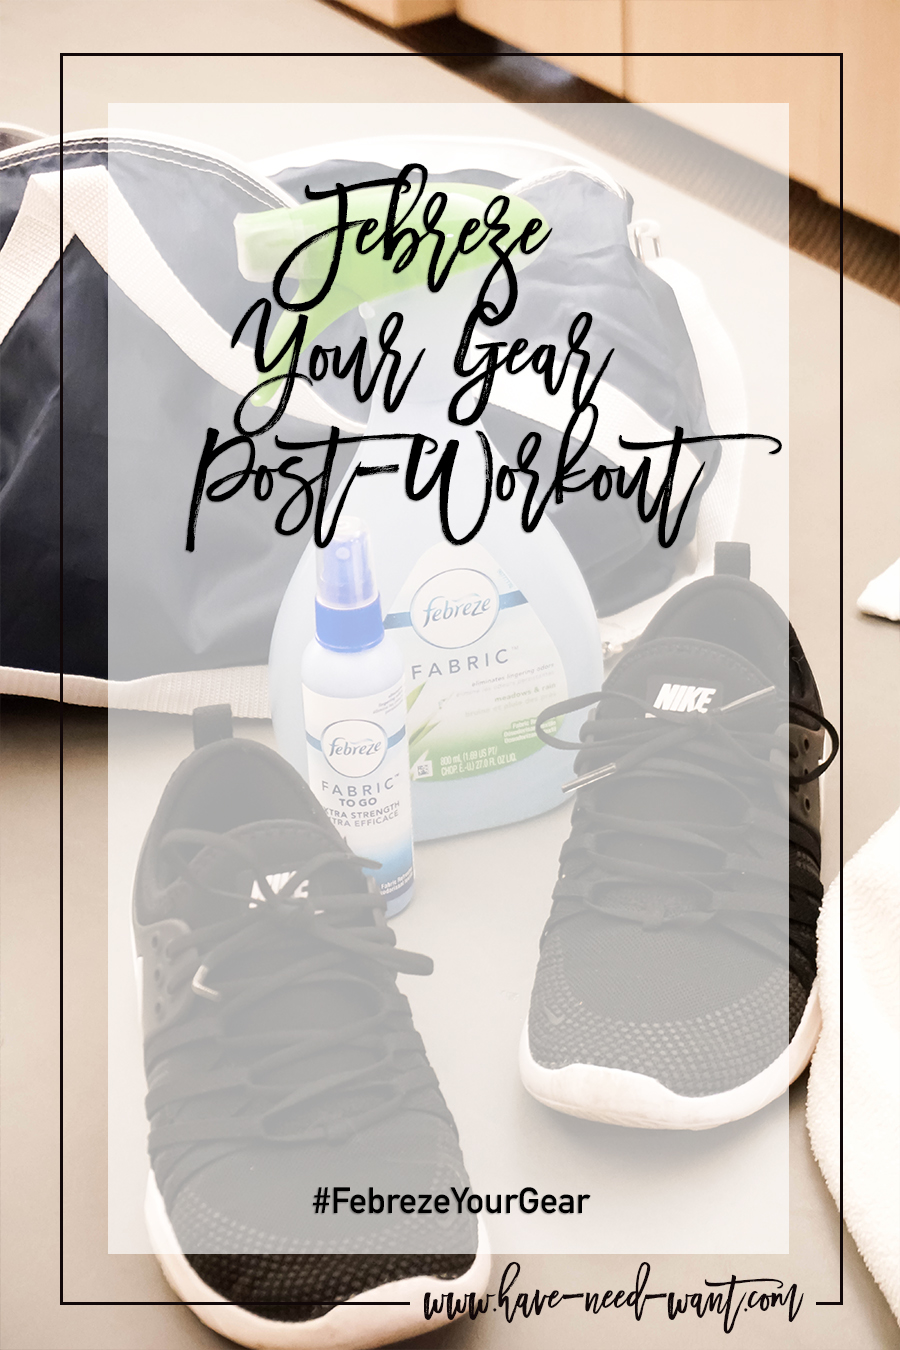 Remove Sweat Odors From Your Gym Clothes and Gear with Febreze Fabric Refresher - Have Need Want #febrezeyourgear #ad